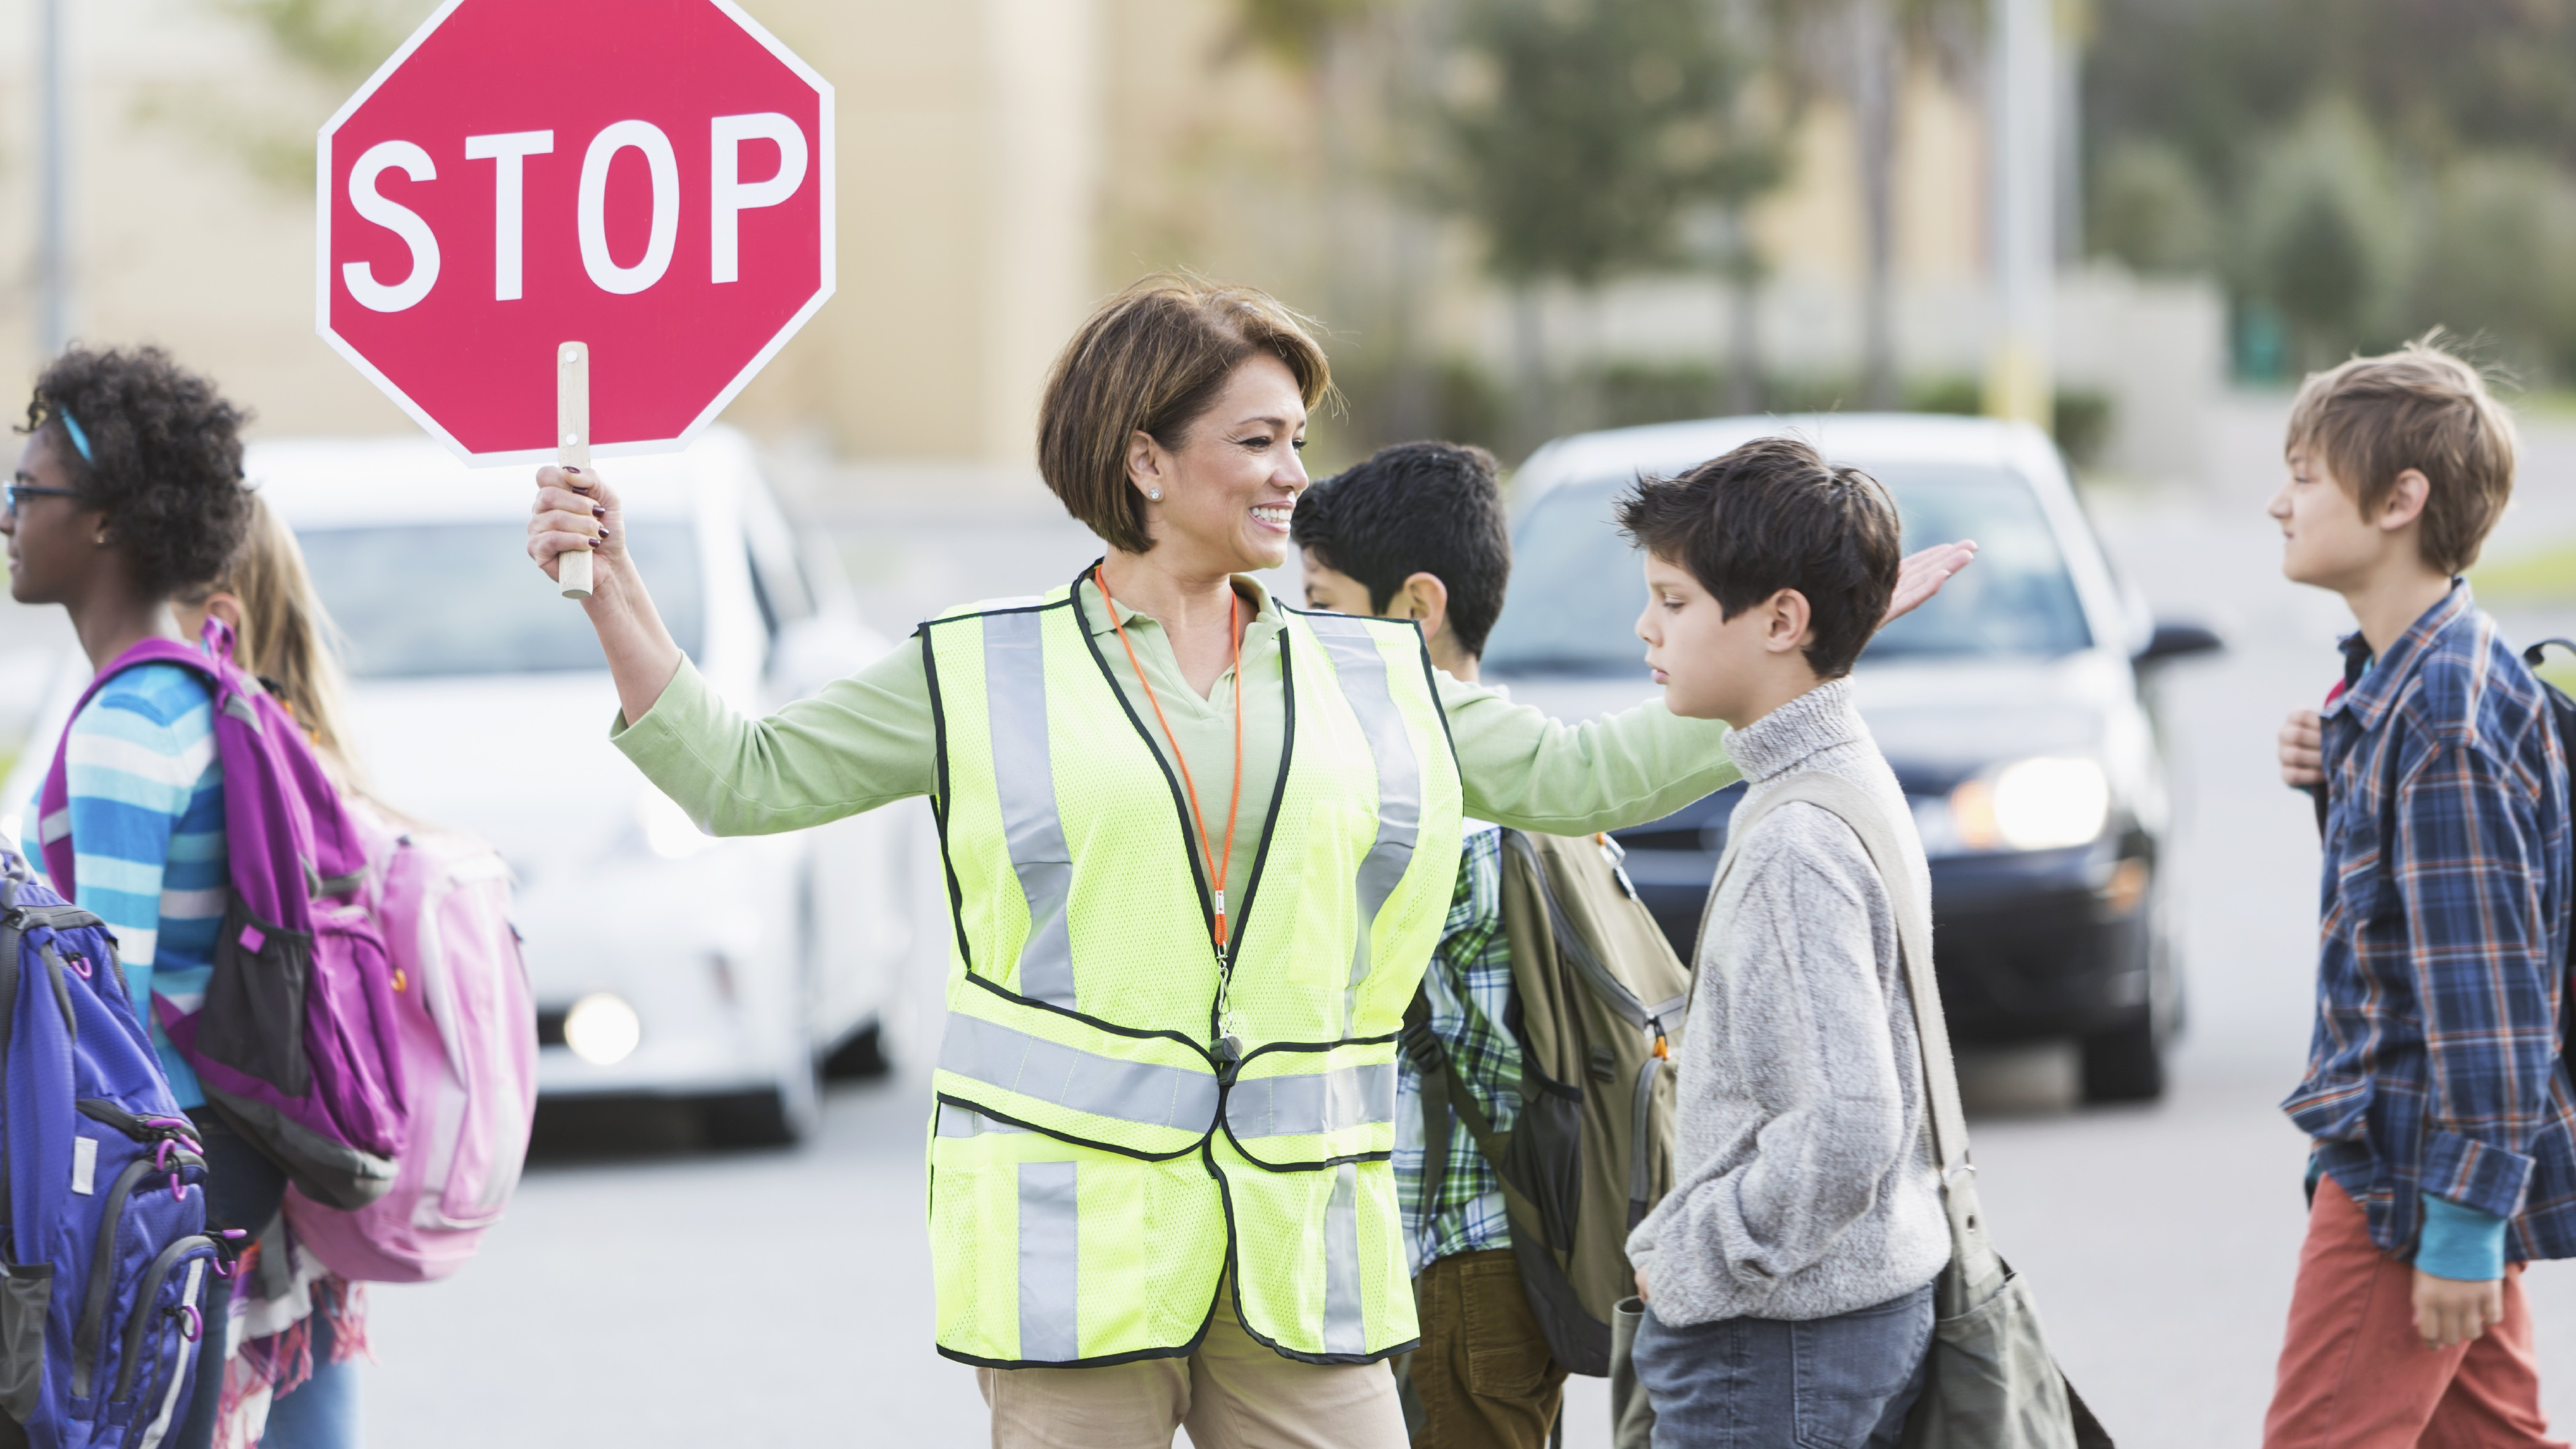 Vancouver School Board, city council, consider ways to make the walk to school safer